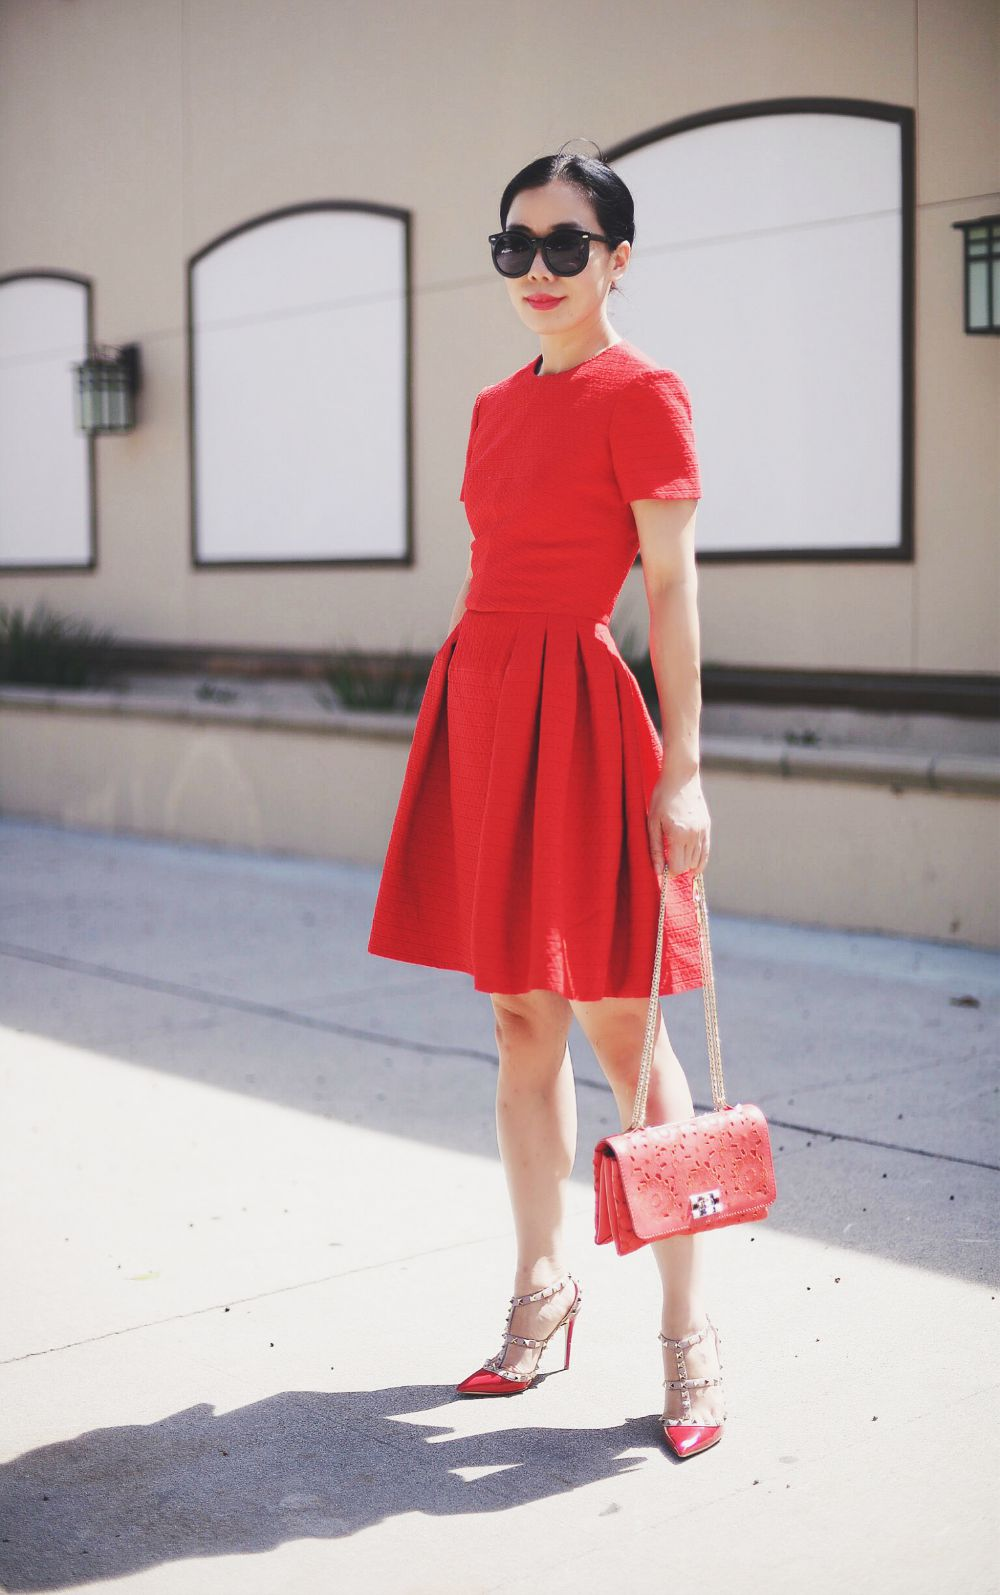 Super sexy in red!